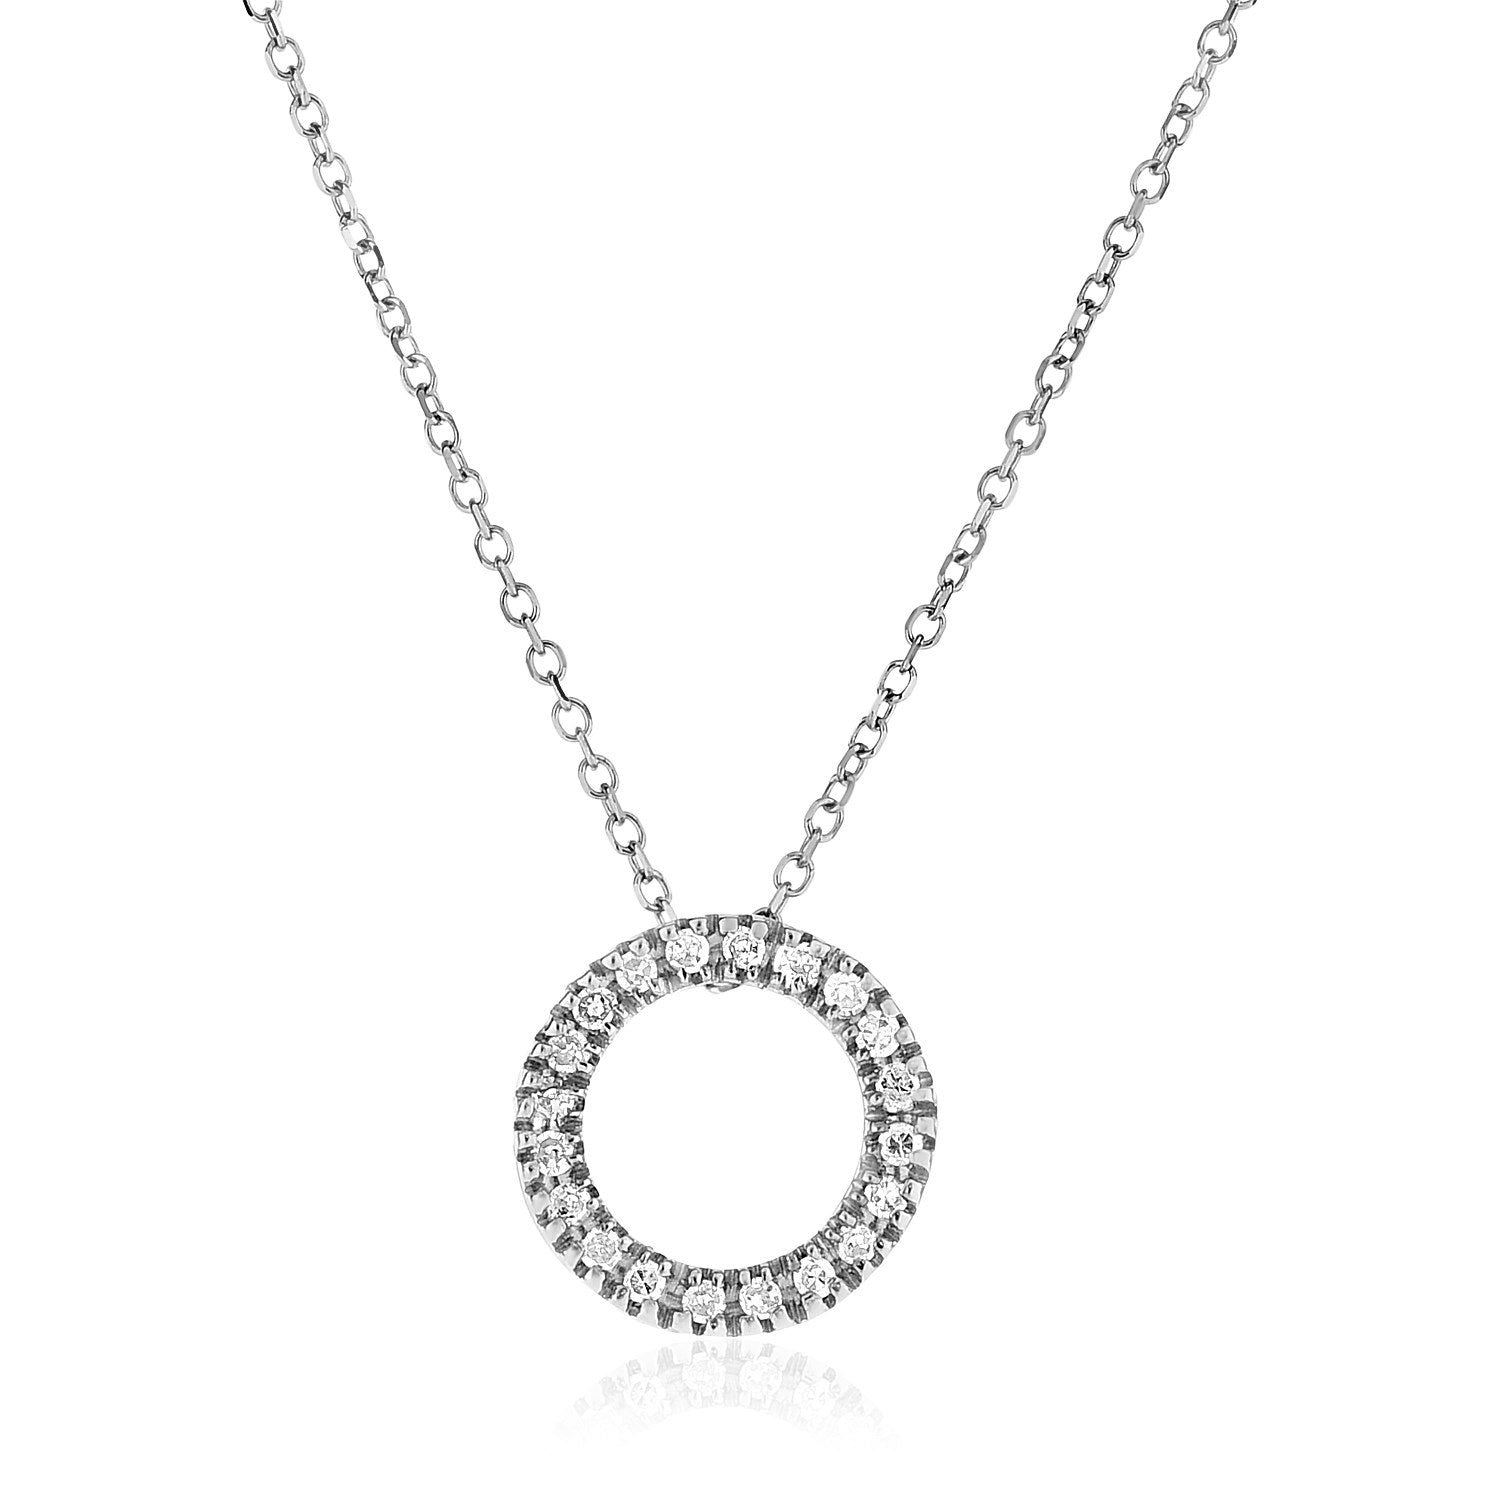 87cdc25ec 14k White Gold Necklace with Gold and Diamond Open Ring Pendant (1/10 cttw)